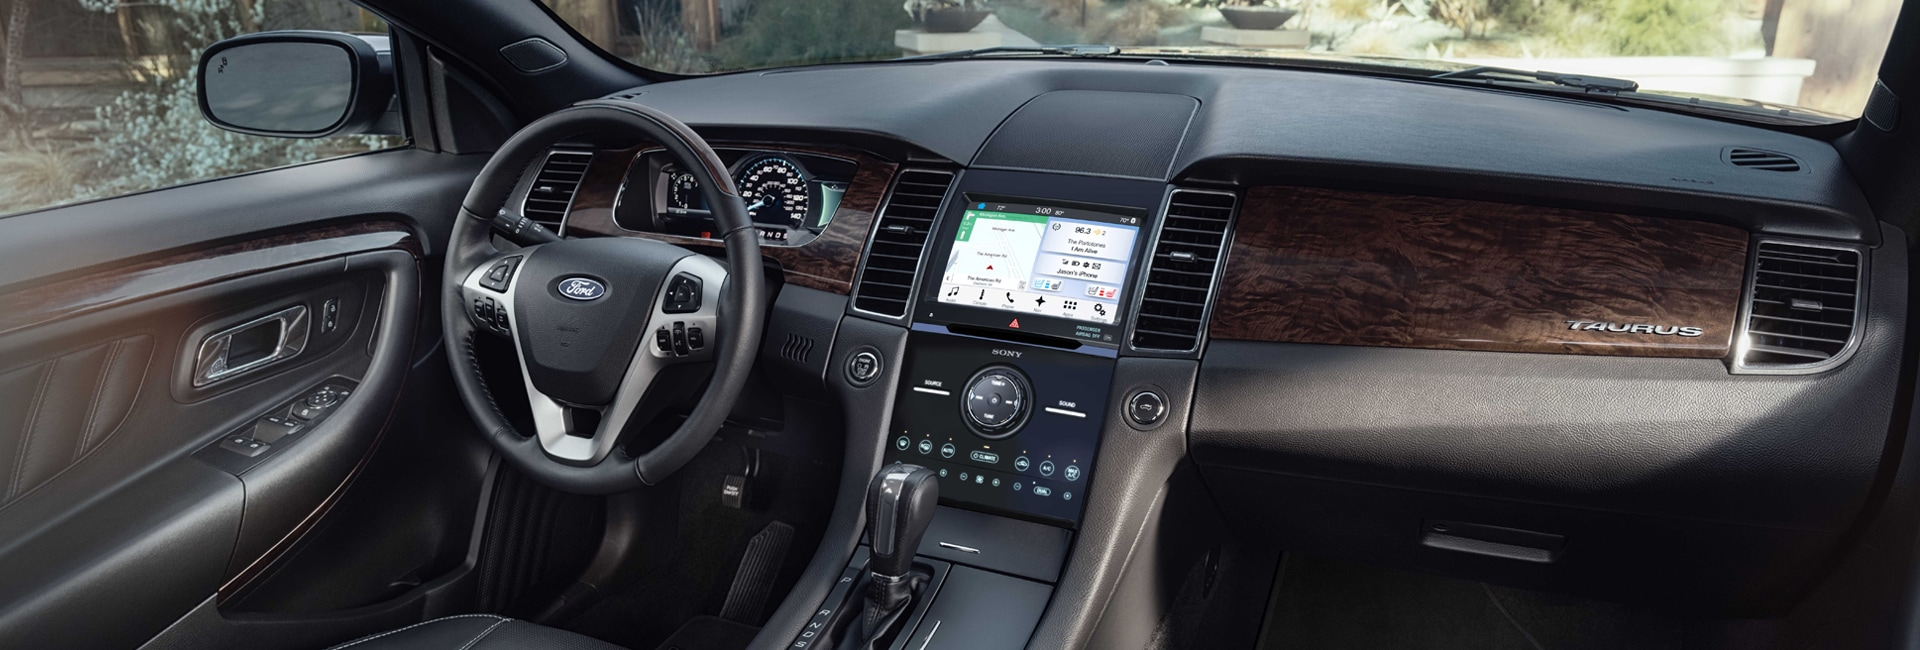 Ford Taurus Interior Vehicle Features